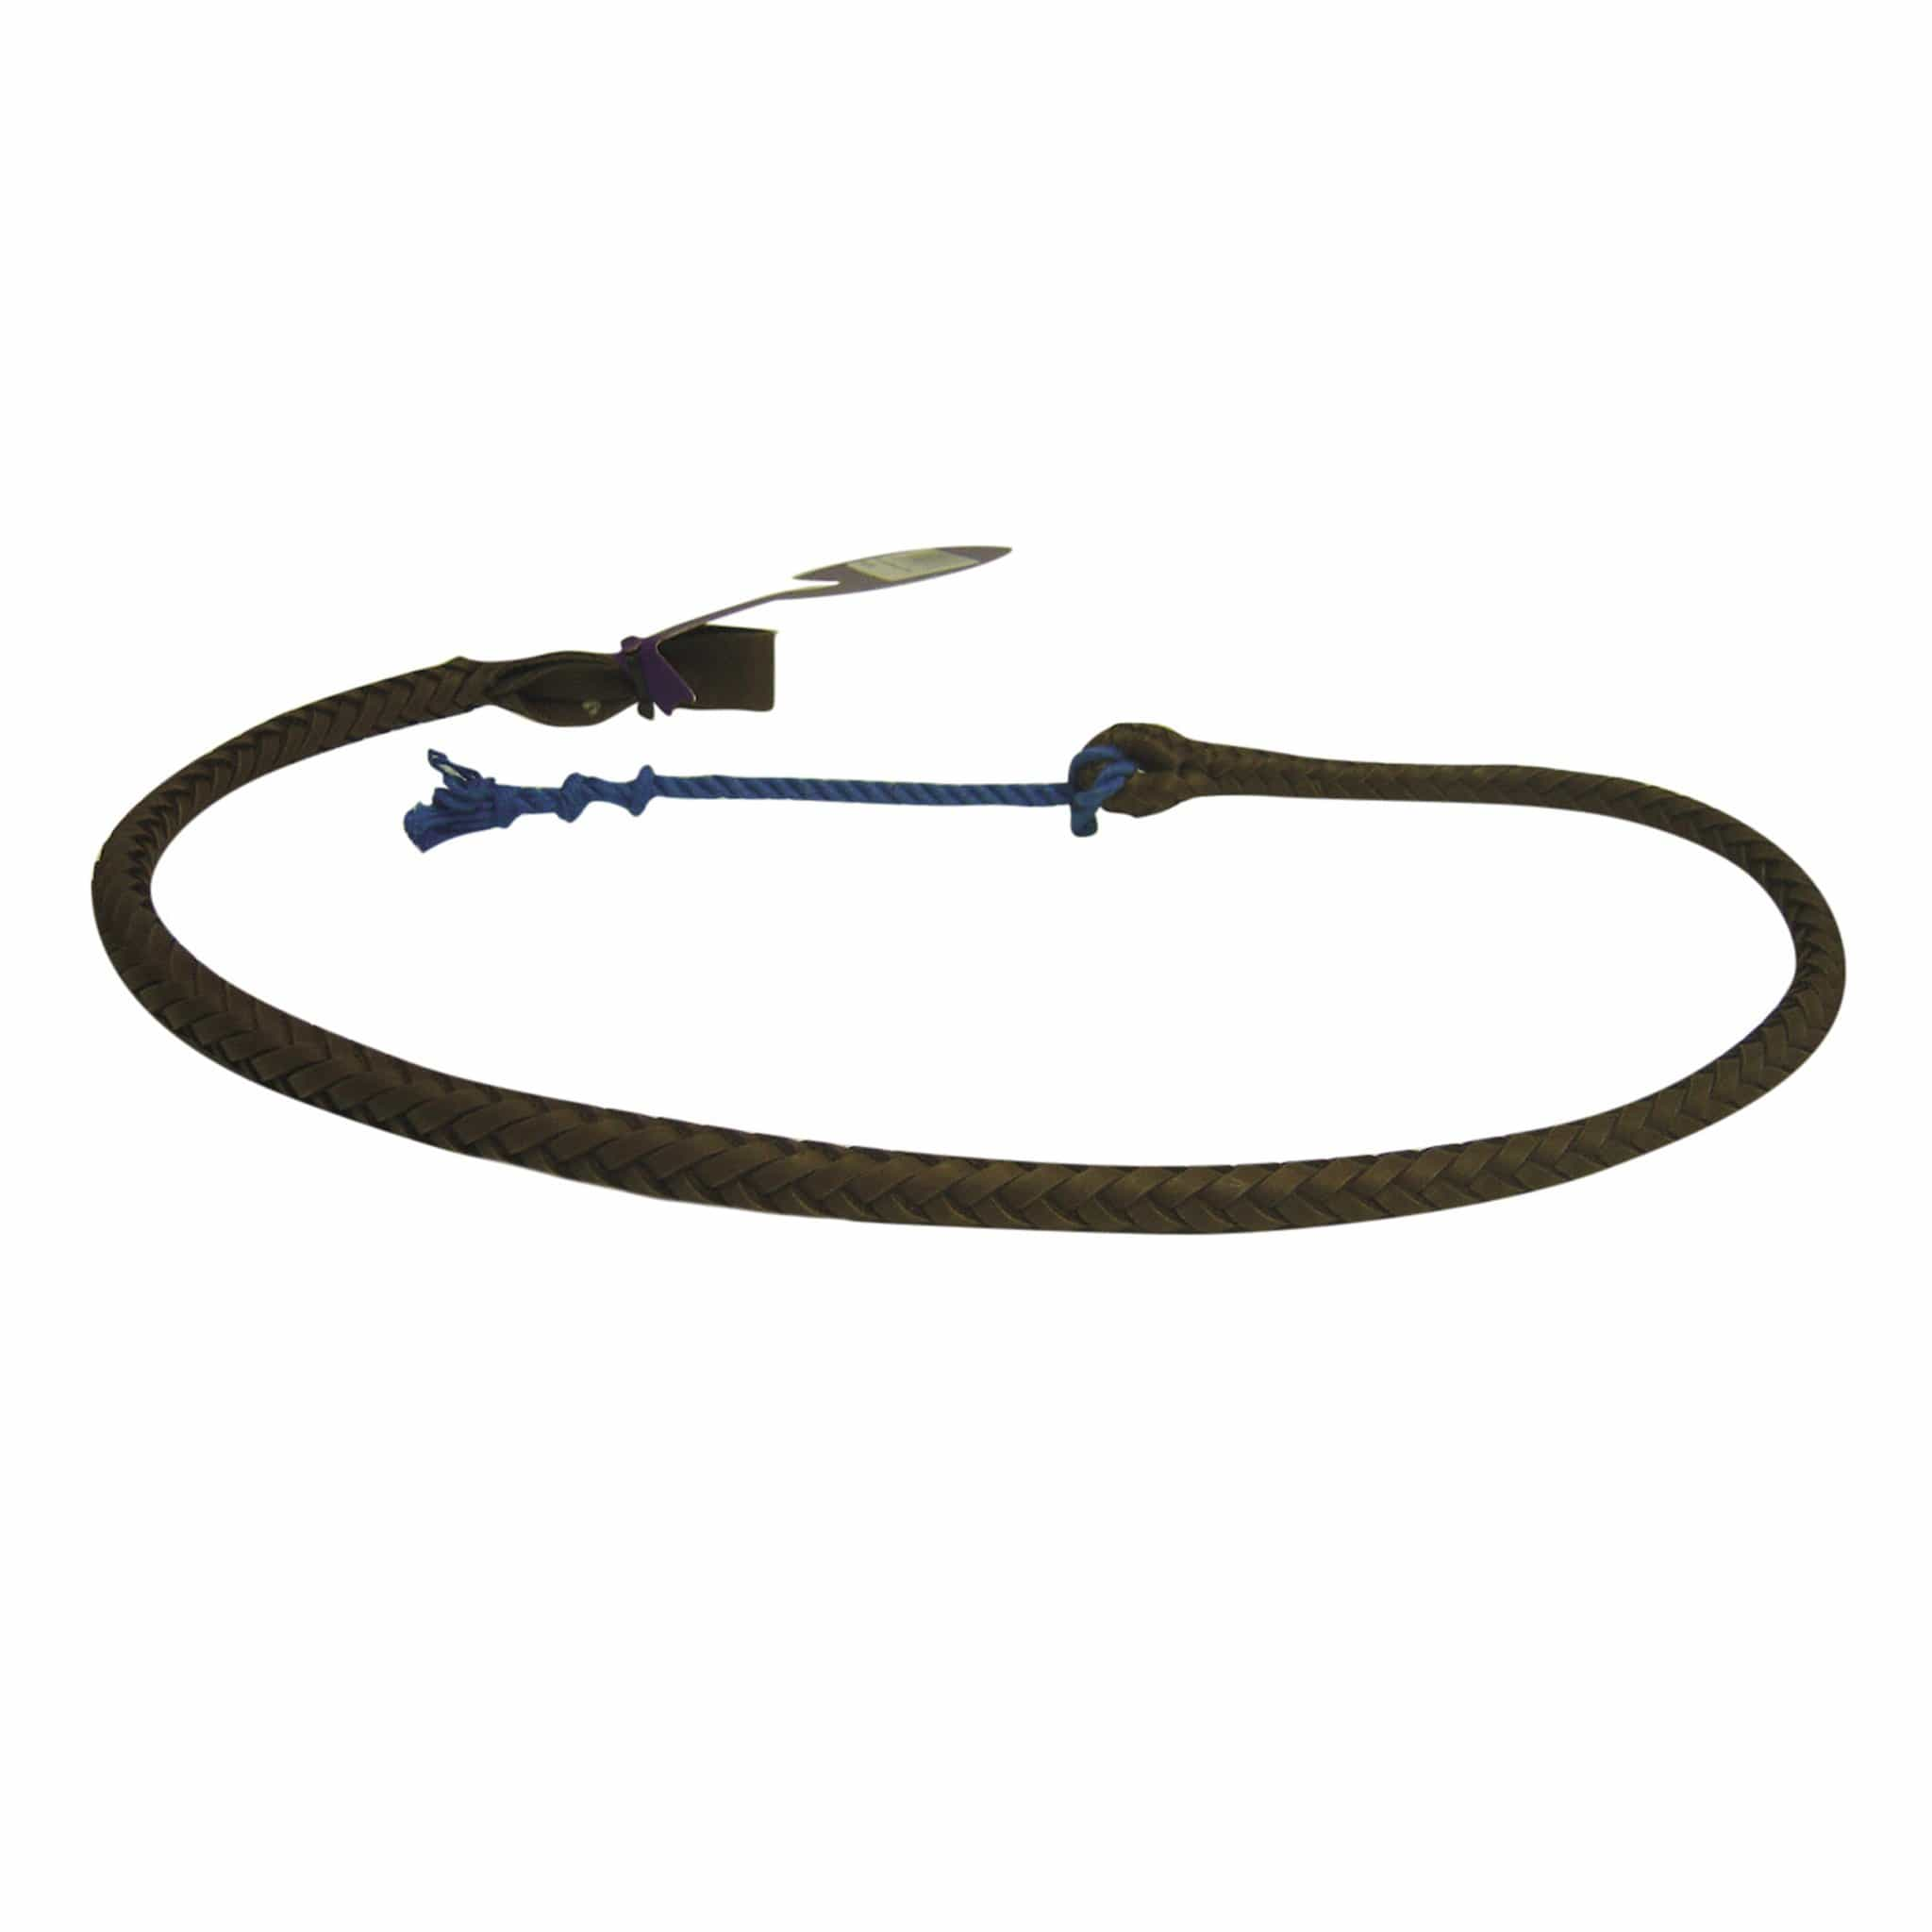 Mactack Hunting Beaufort Thong MAC5620 1 Yard